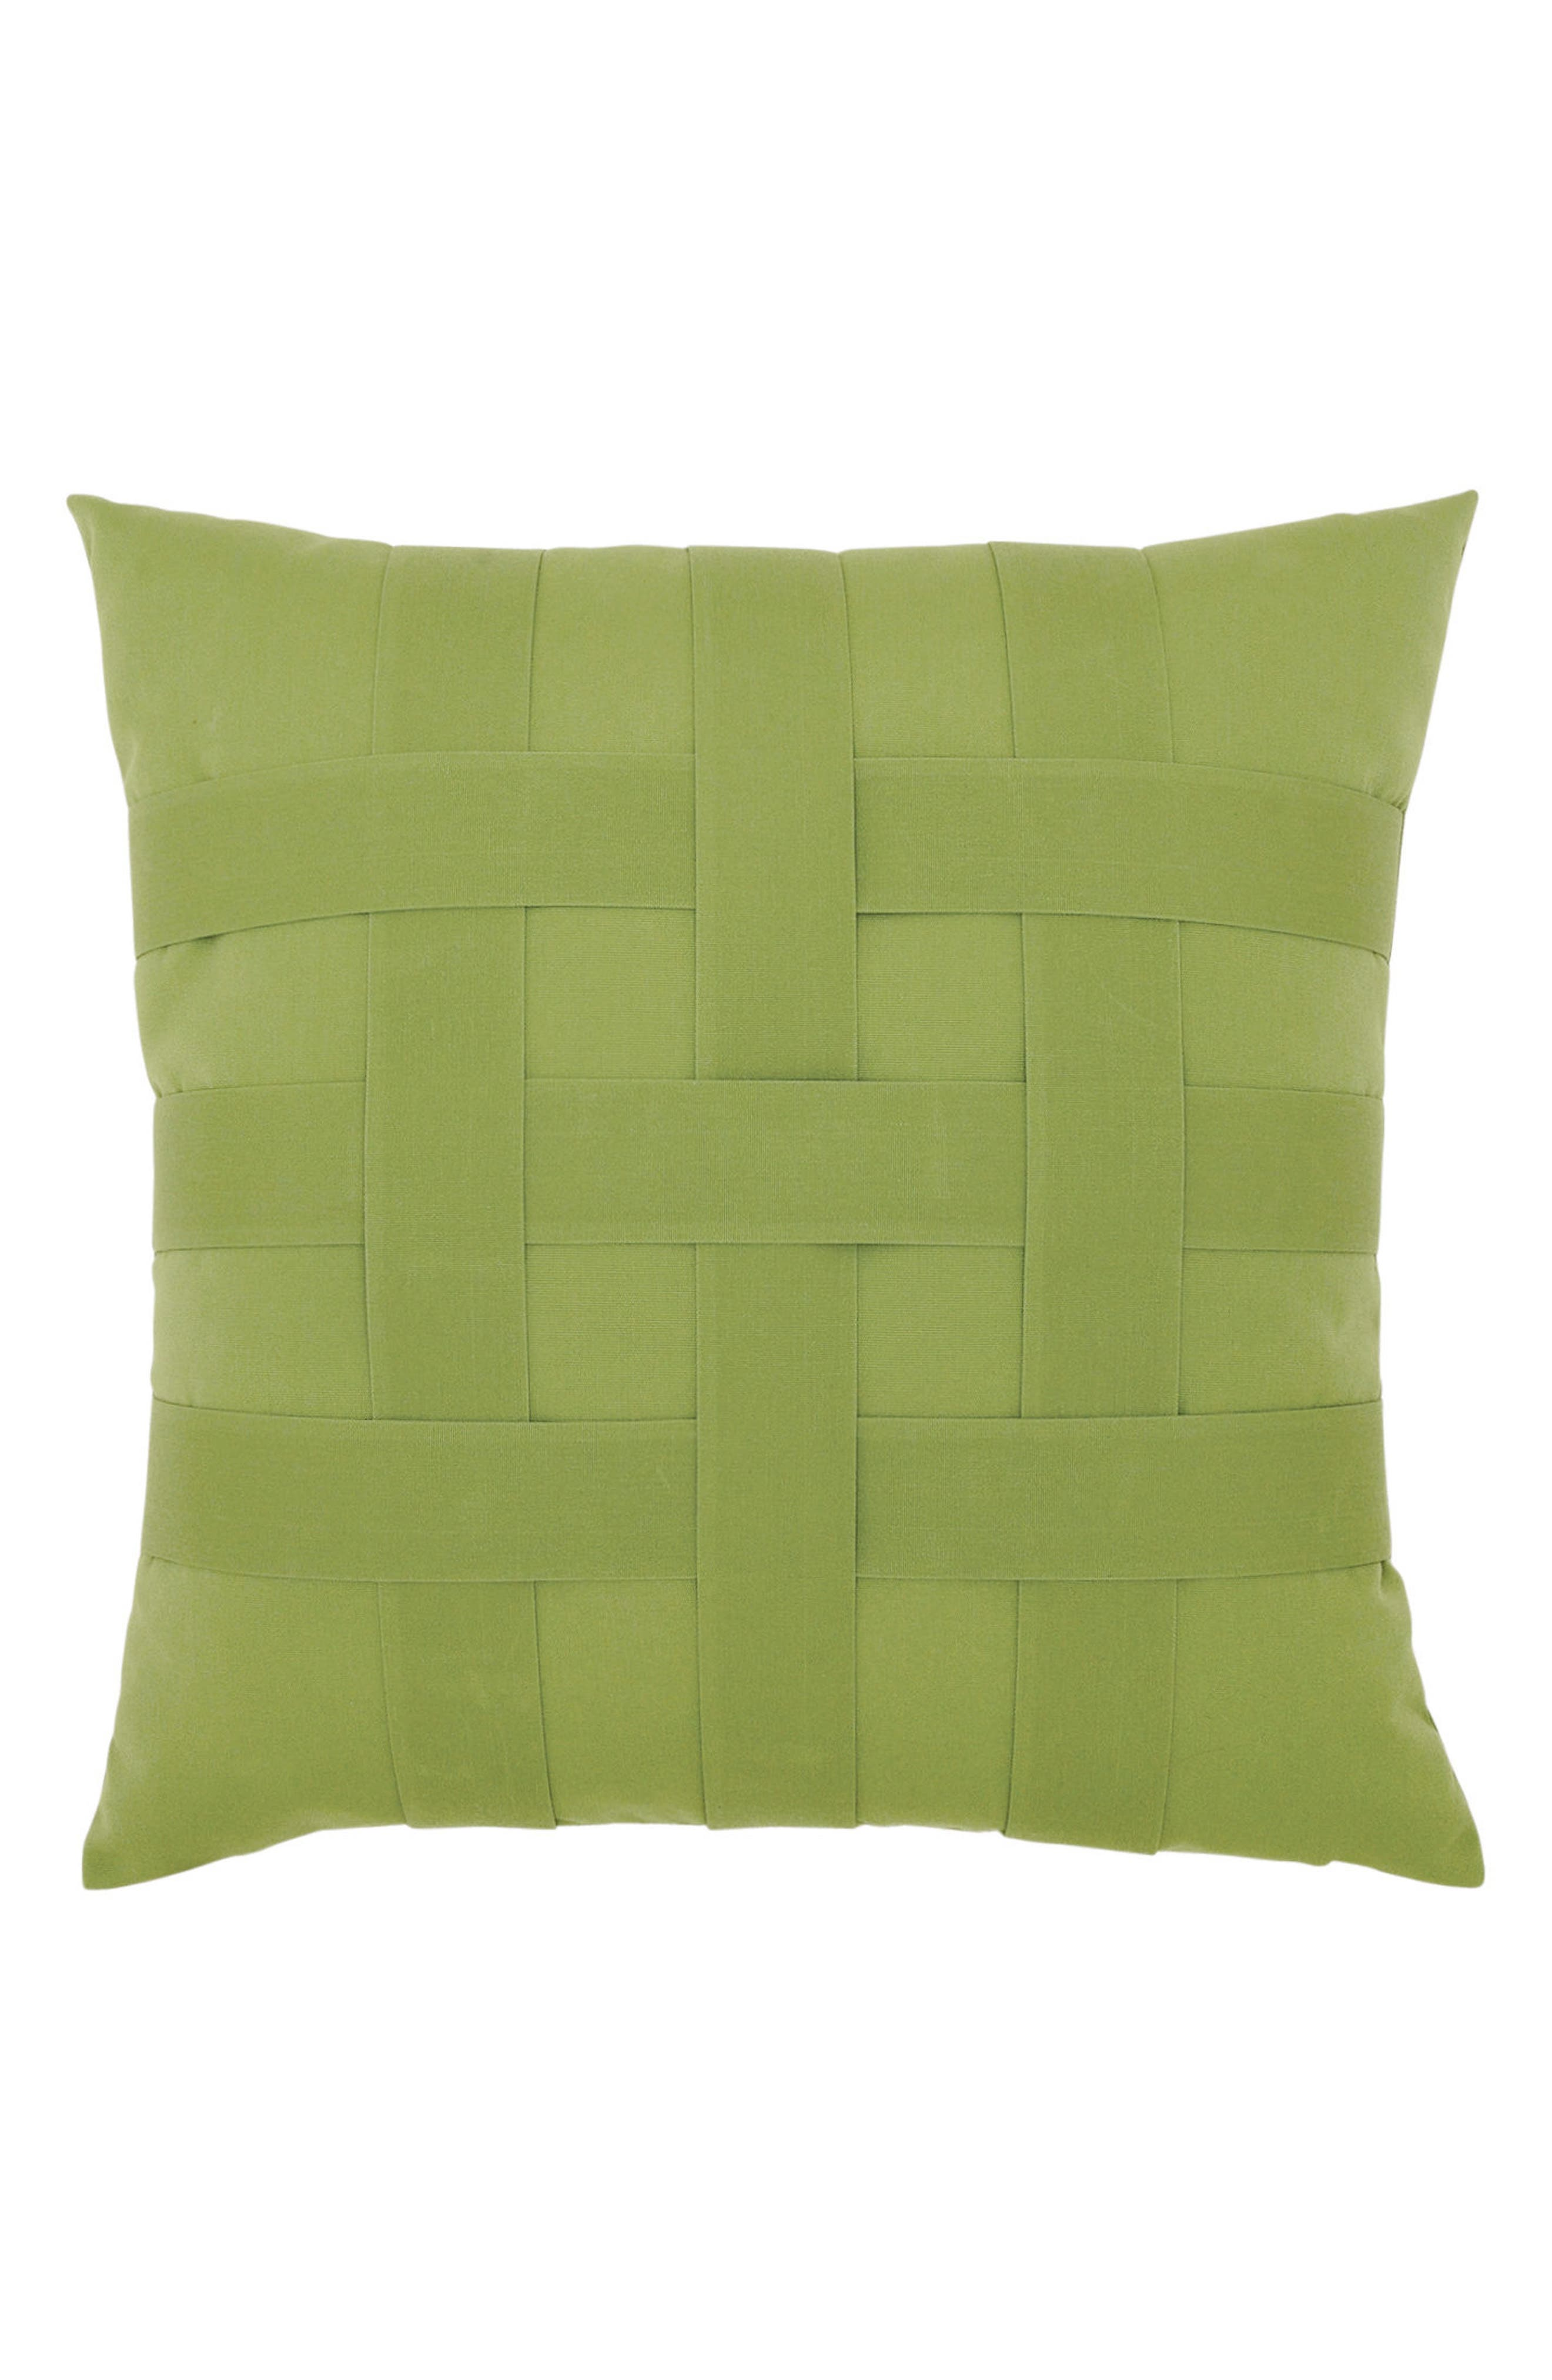 ELAINE SMITH,                             Basket Weave Indoor/Outdoor Accent Pillow,                             Main thumbnail 1, color,                             300